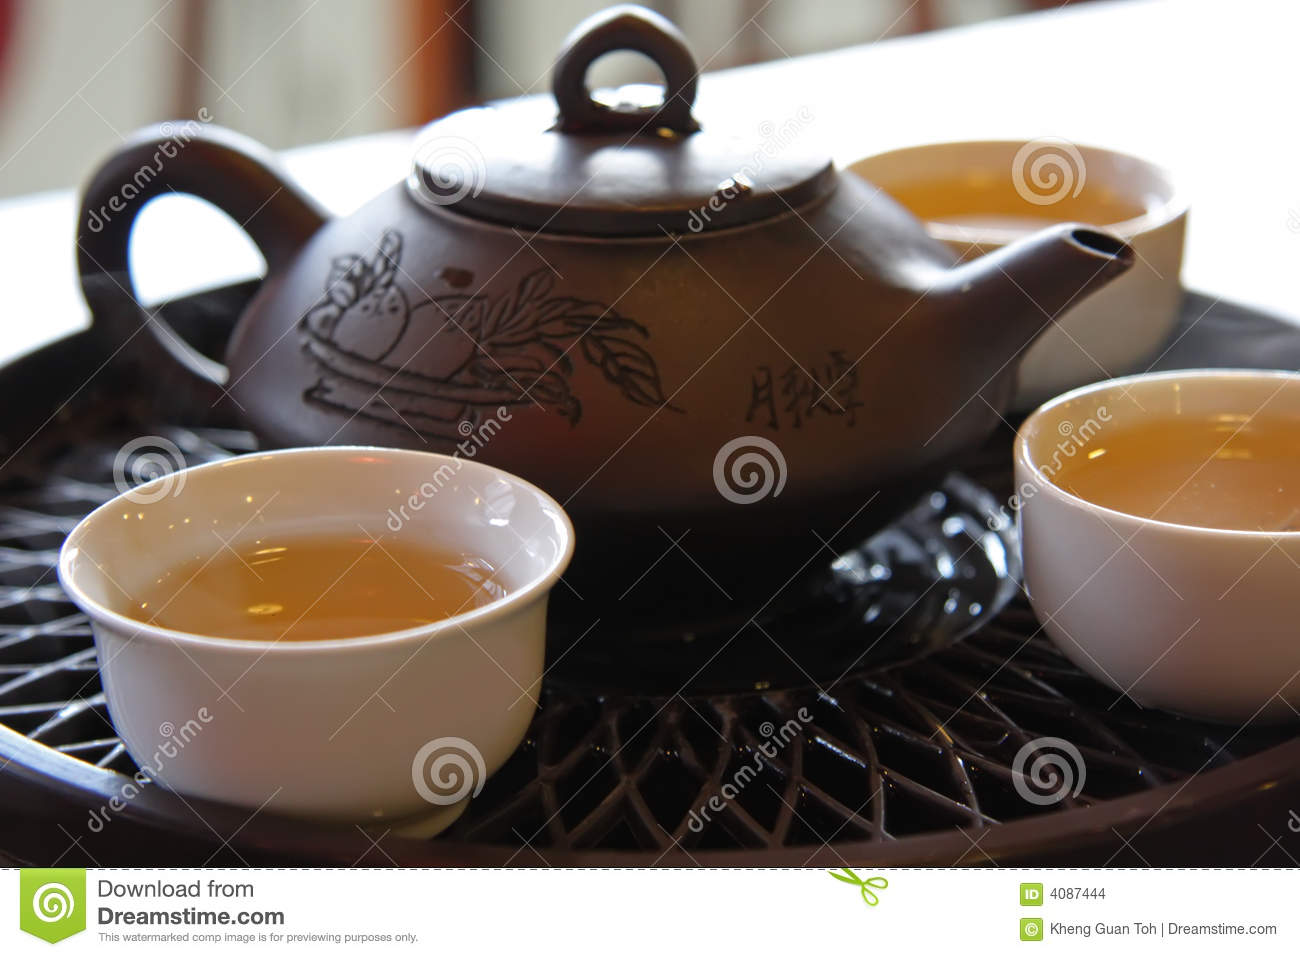 Chinese tea service